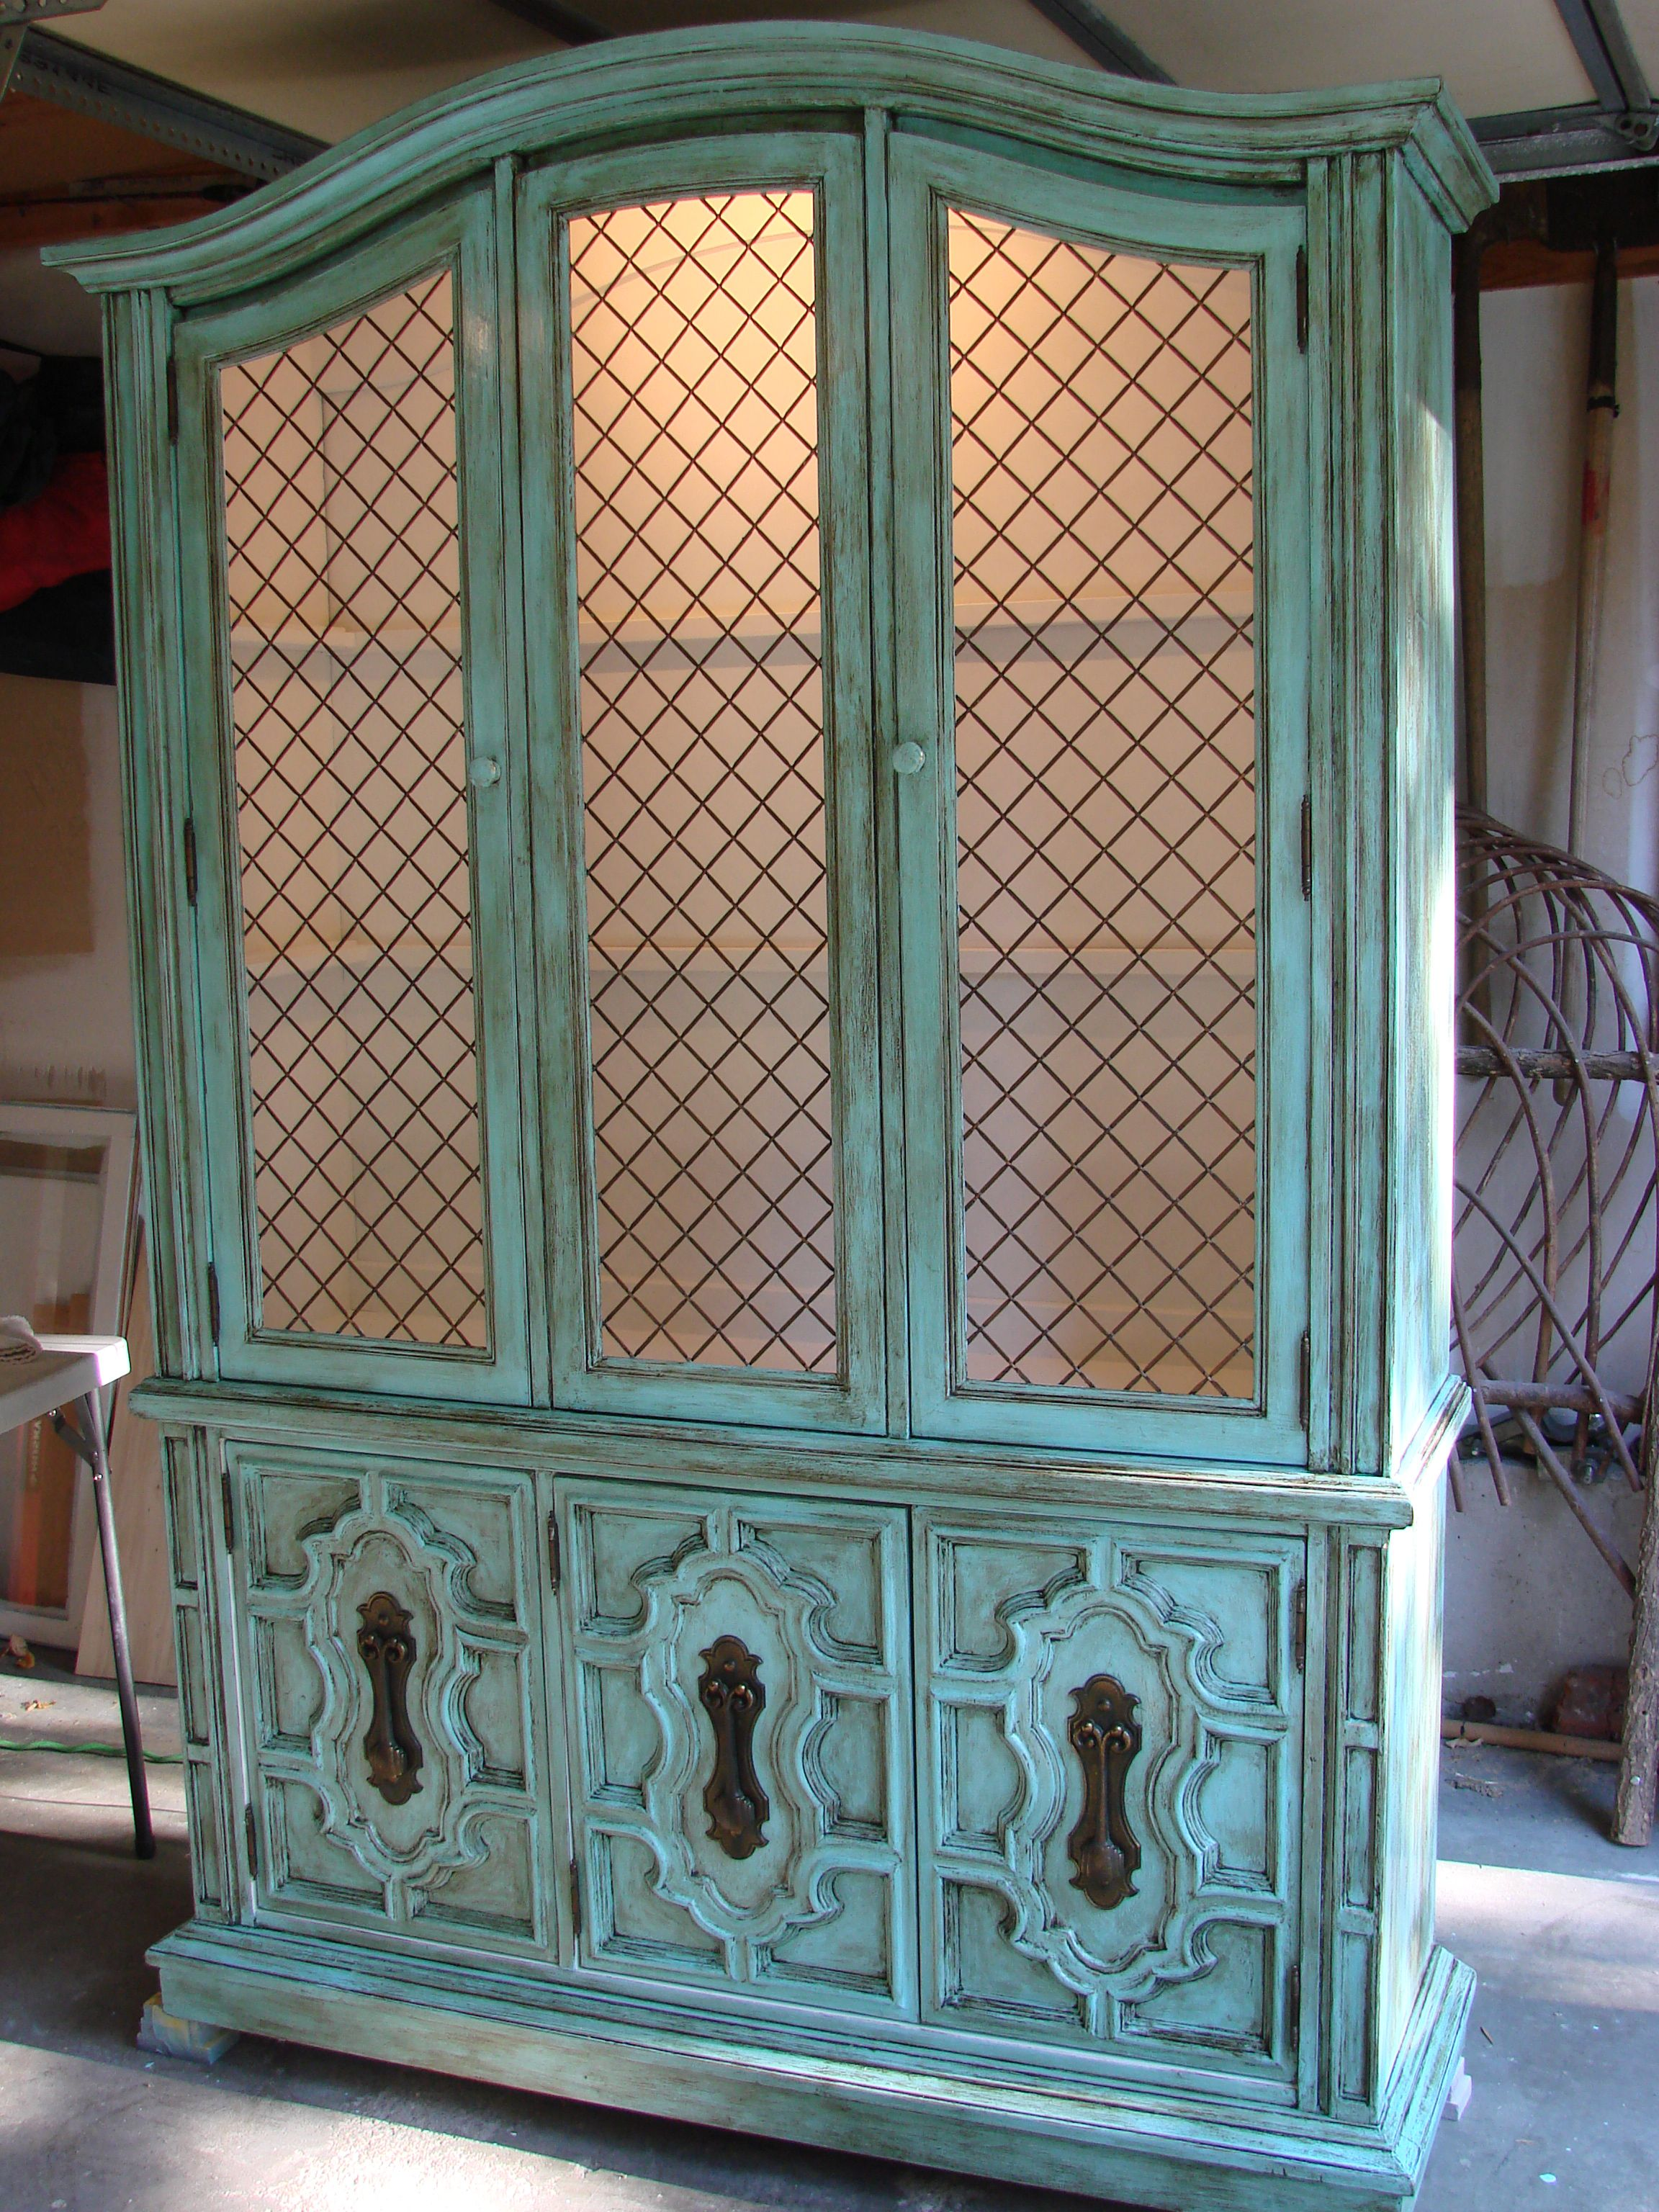 Pin on The Teal ButterflyRestyled Furniture & Home Decor